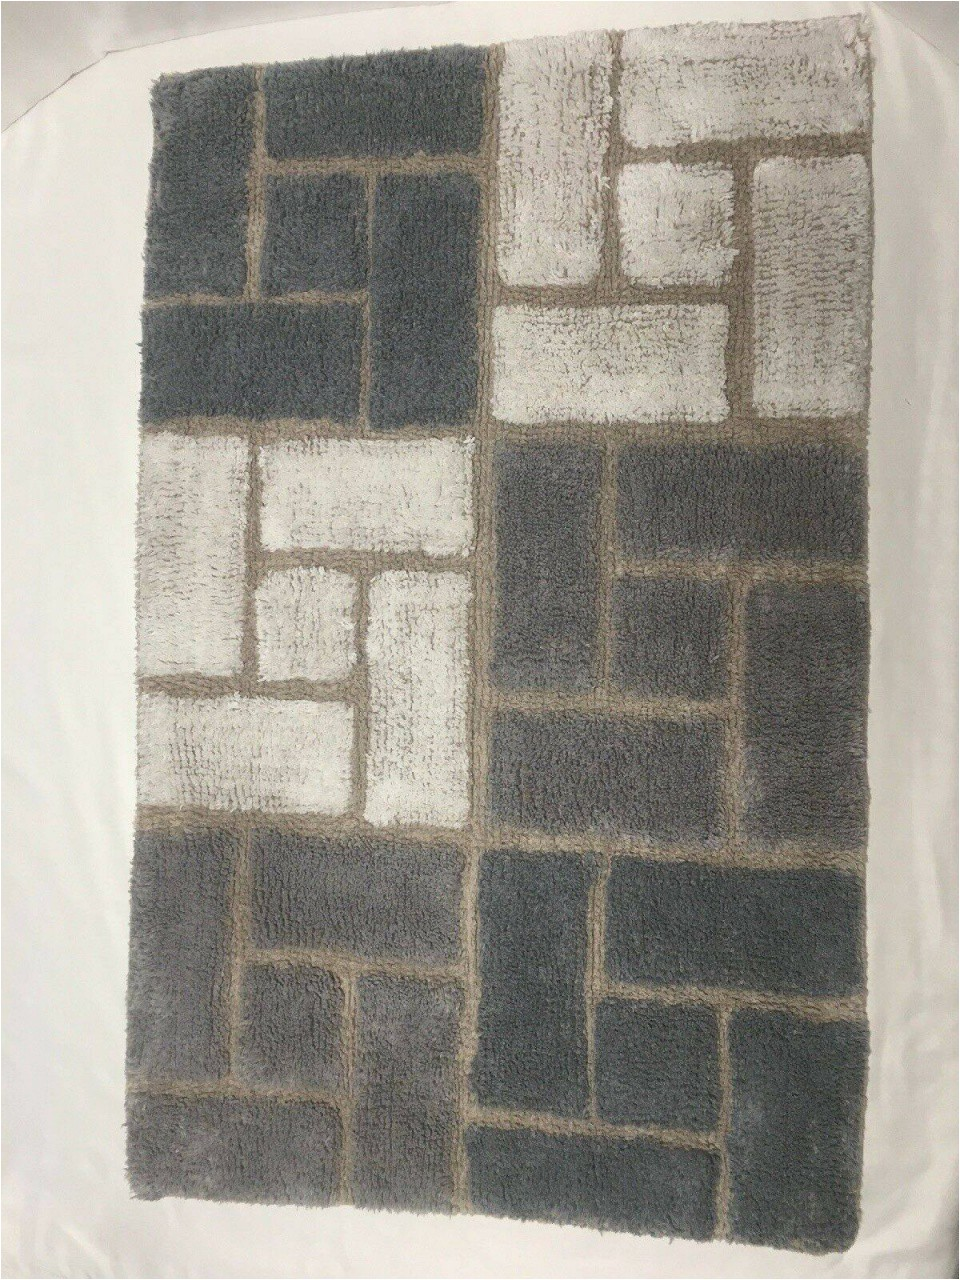 Dark Gray Bath Rugs Dark Grey Bathroom Rug Set Image Of Bathroom and Closet